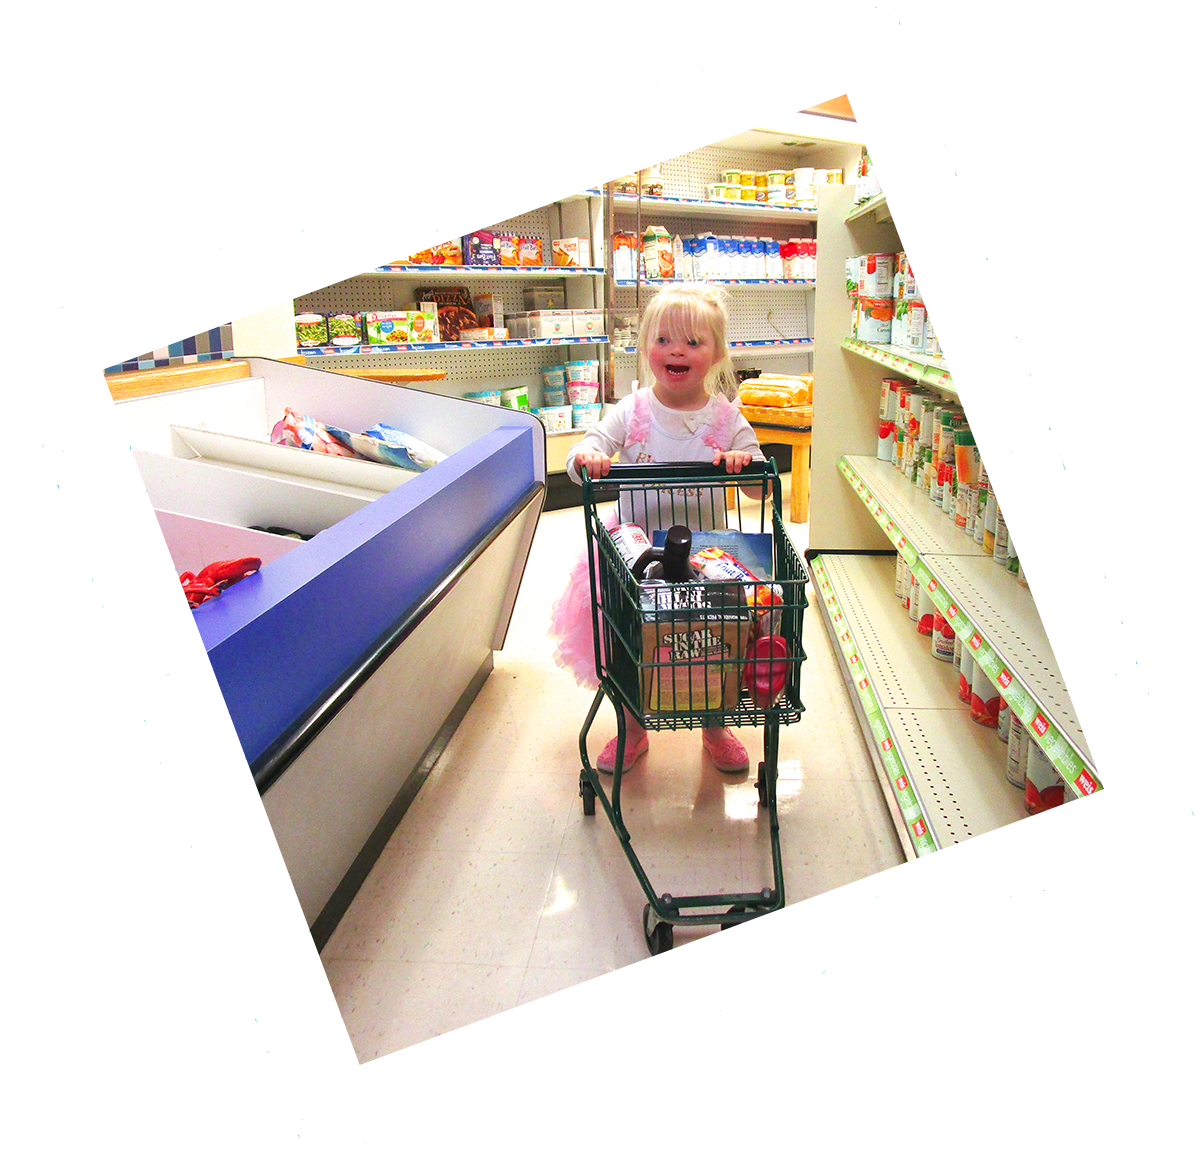 Preschooler in Weis Market exhibit